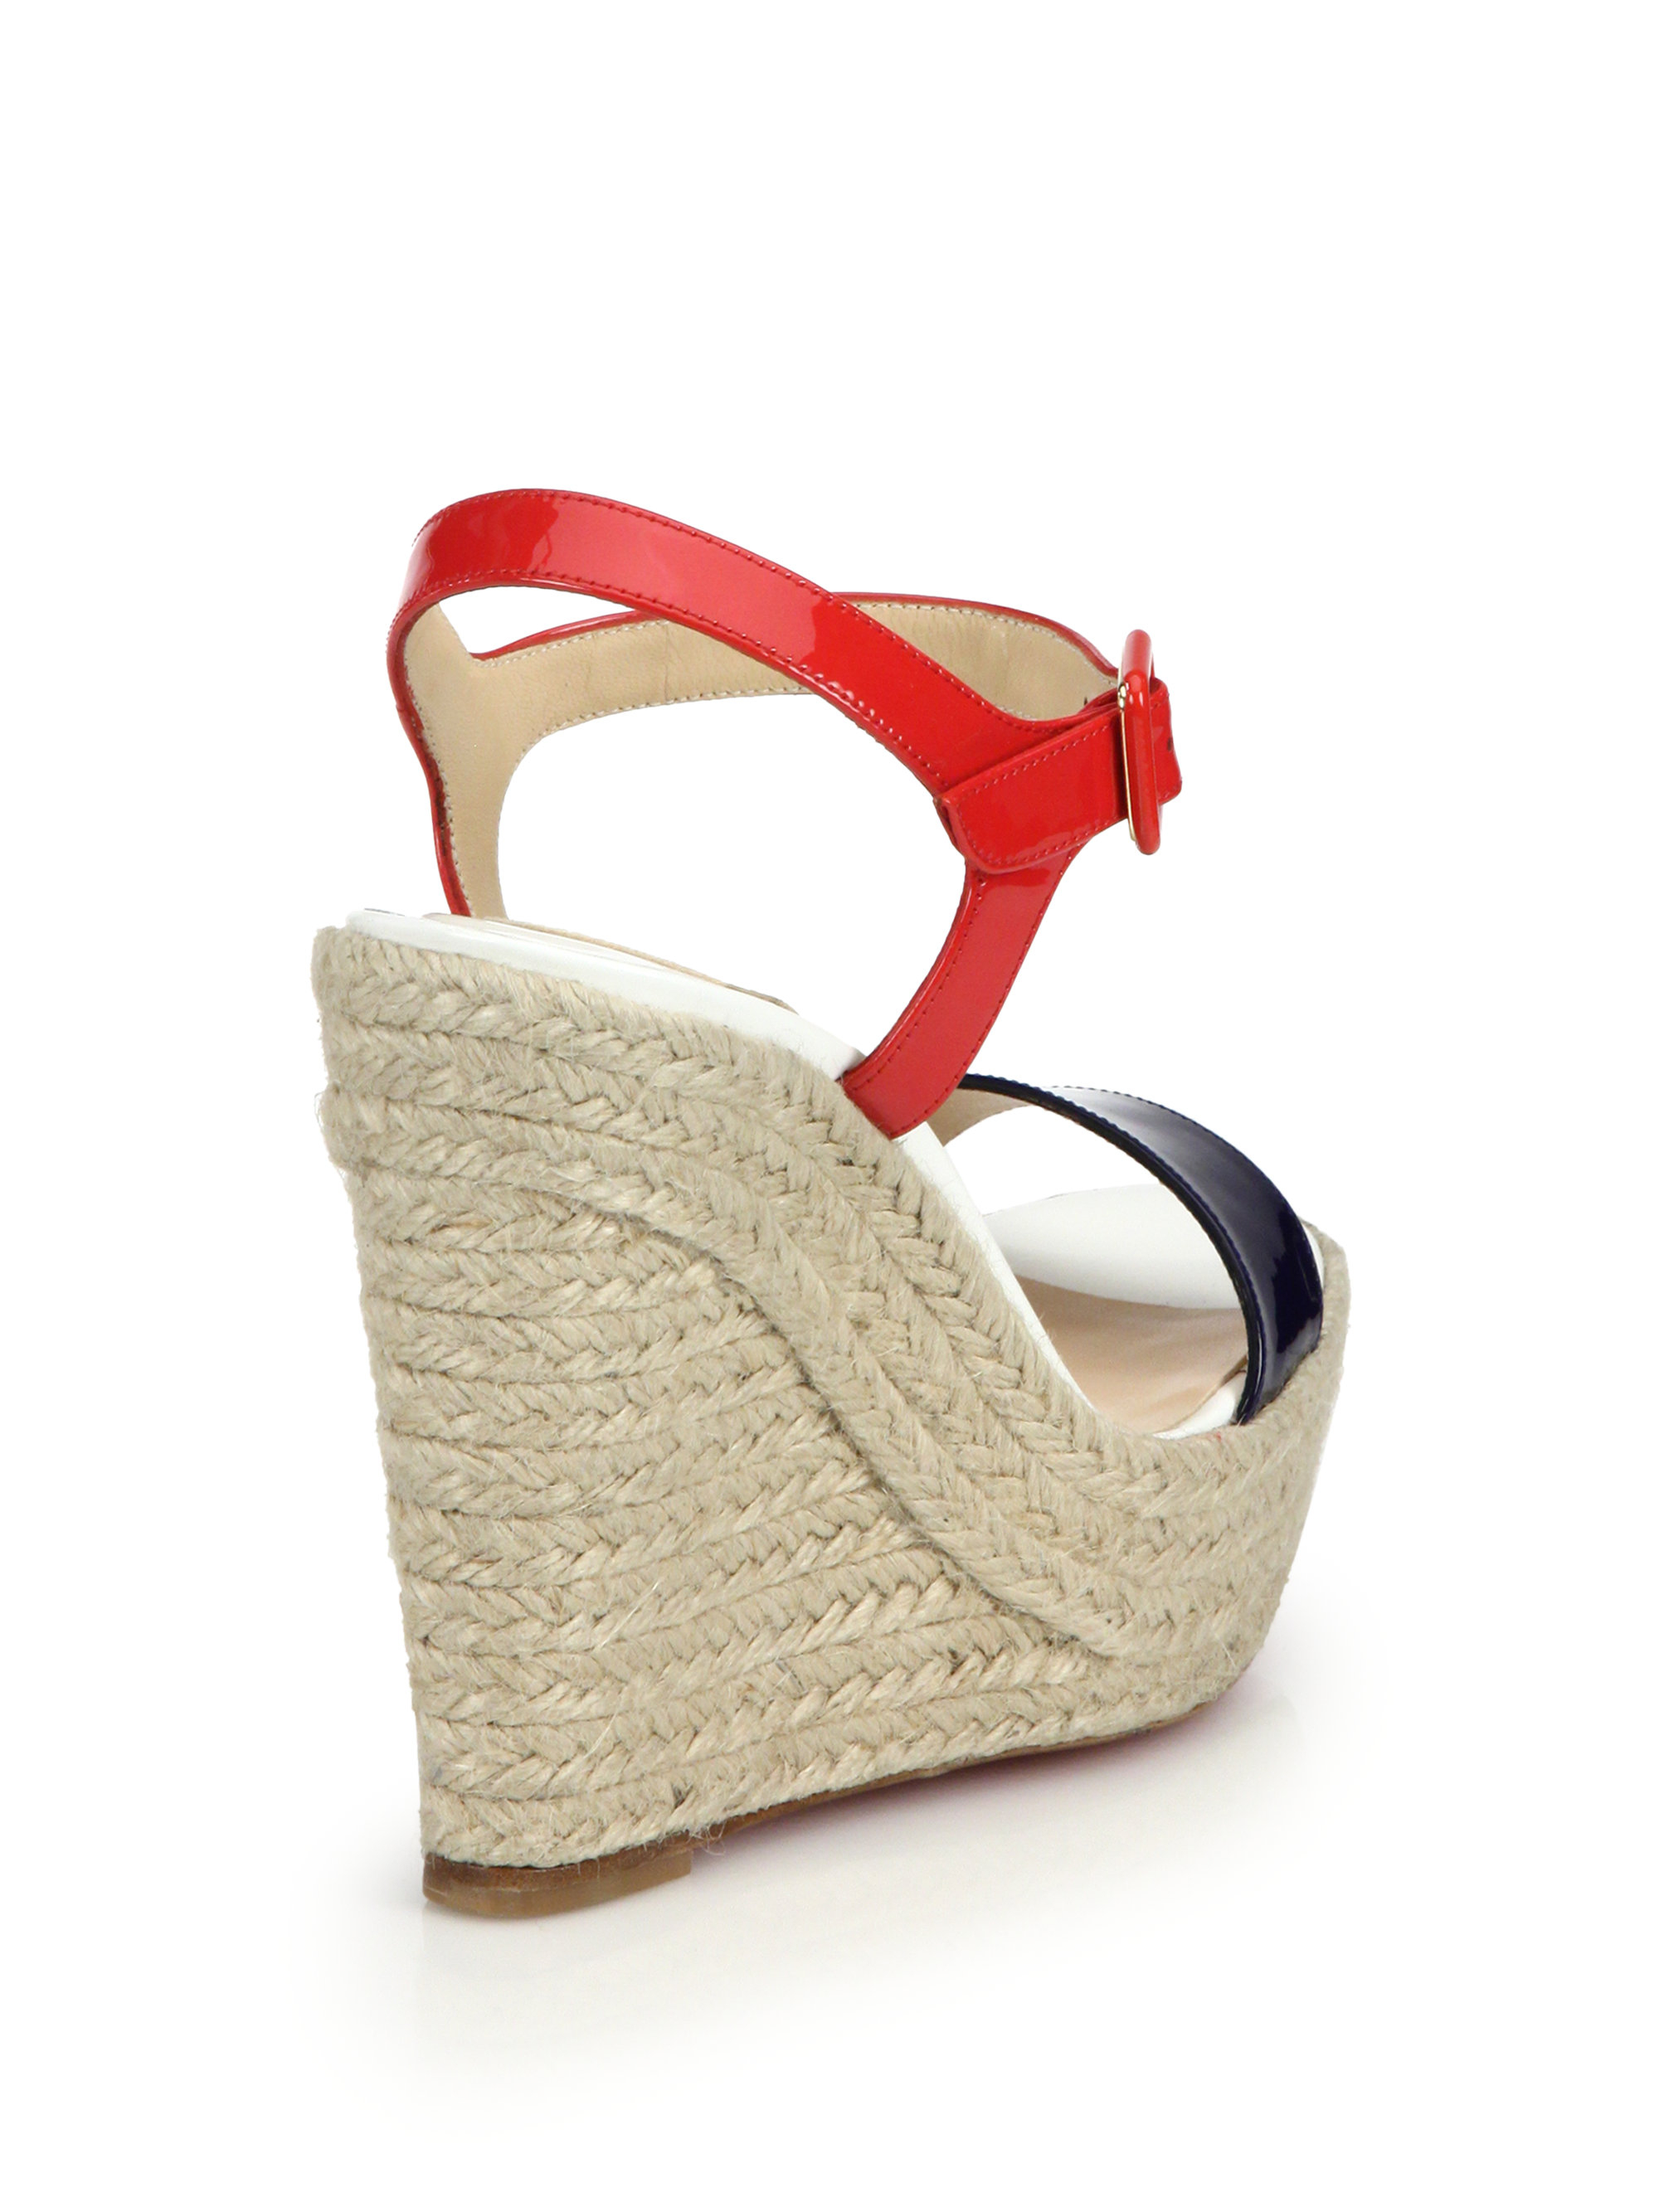 christian louboutin shoes prices - Christian louboutin Spachica Patent Leather Espadrille Wedge ...